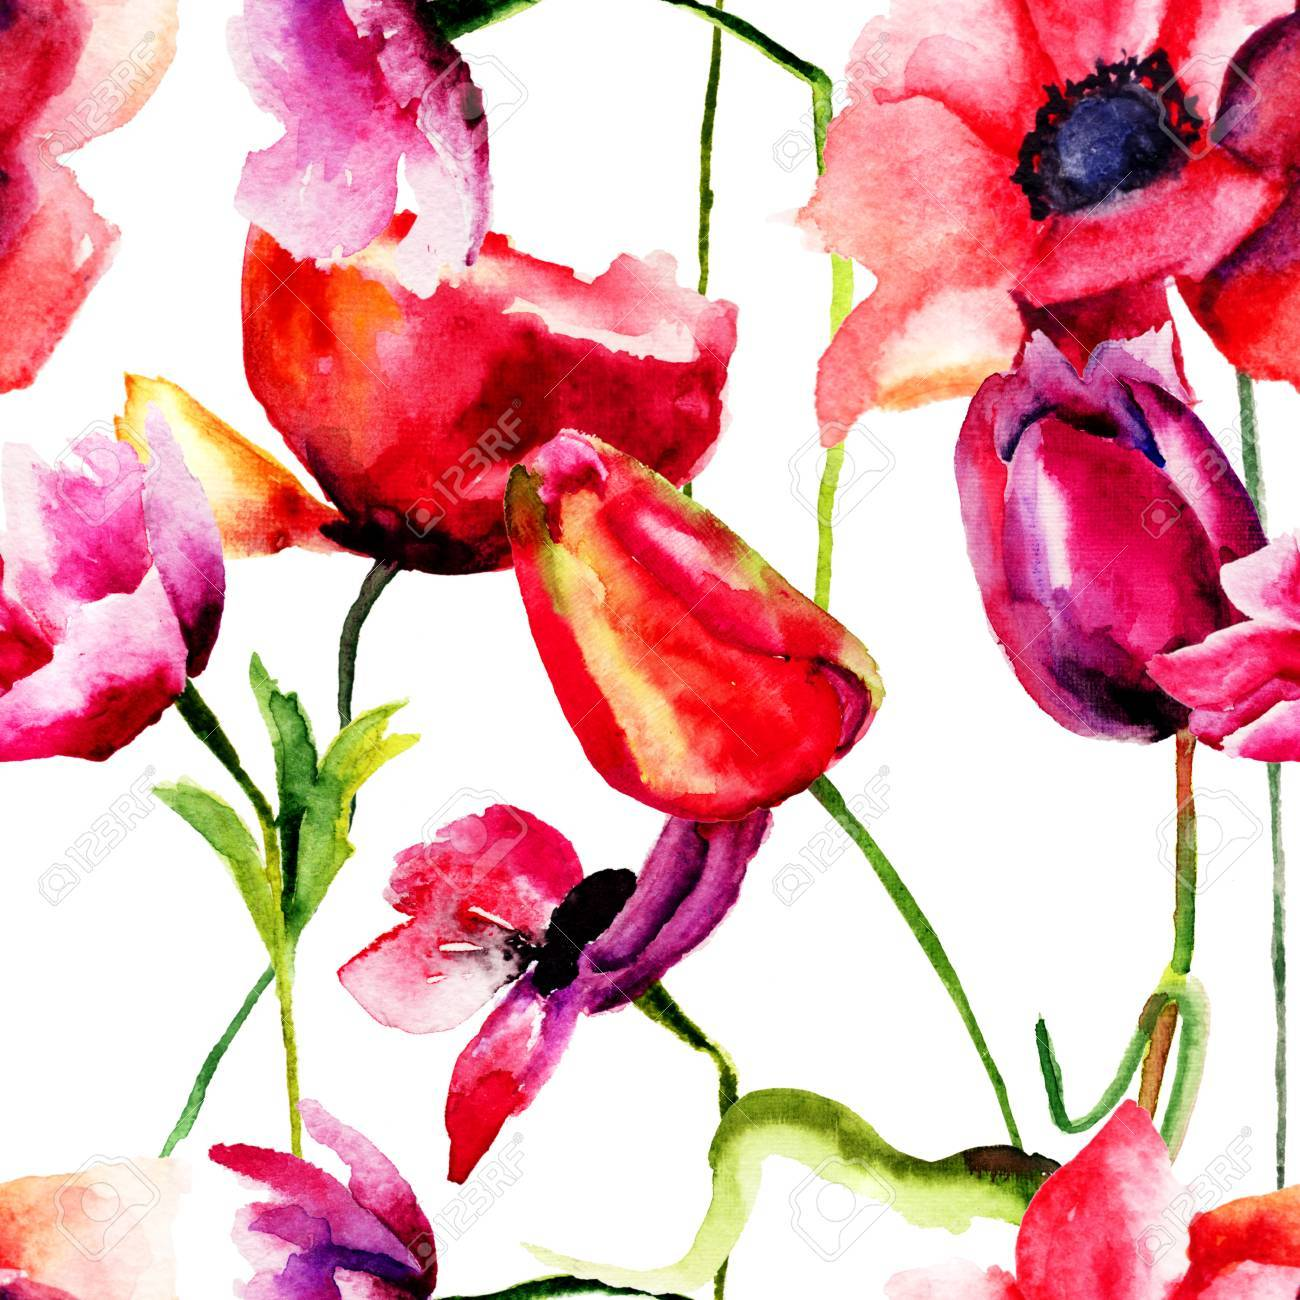 Seamless Wallpaper With Red Flowers Watercolor Illustration Stock Photo Picture And Royalty Free Image Image